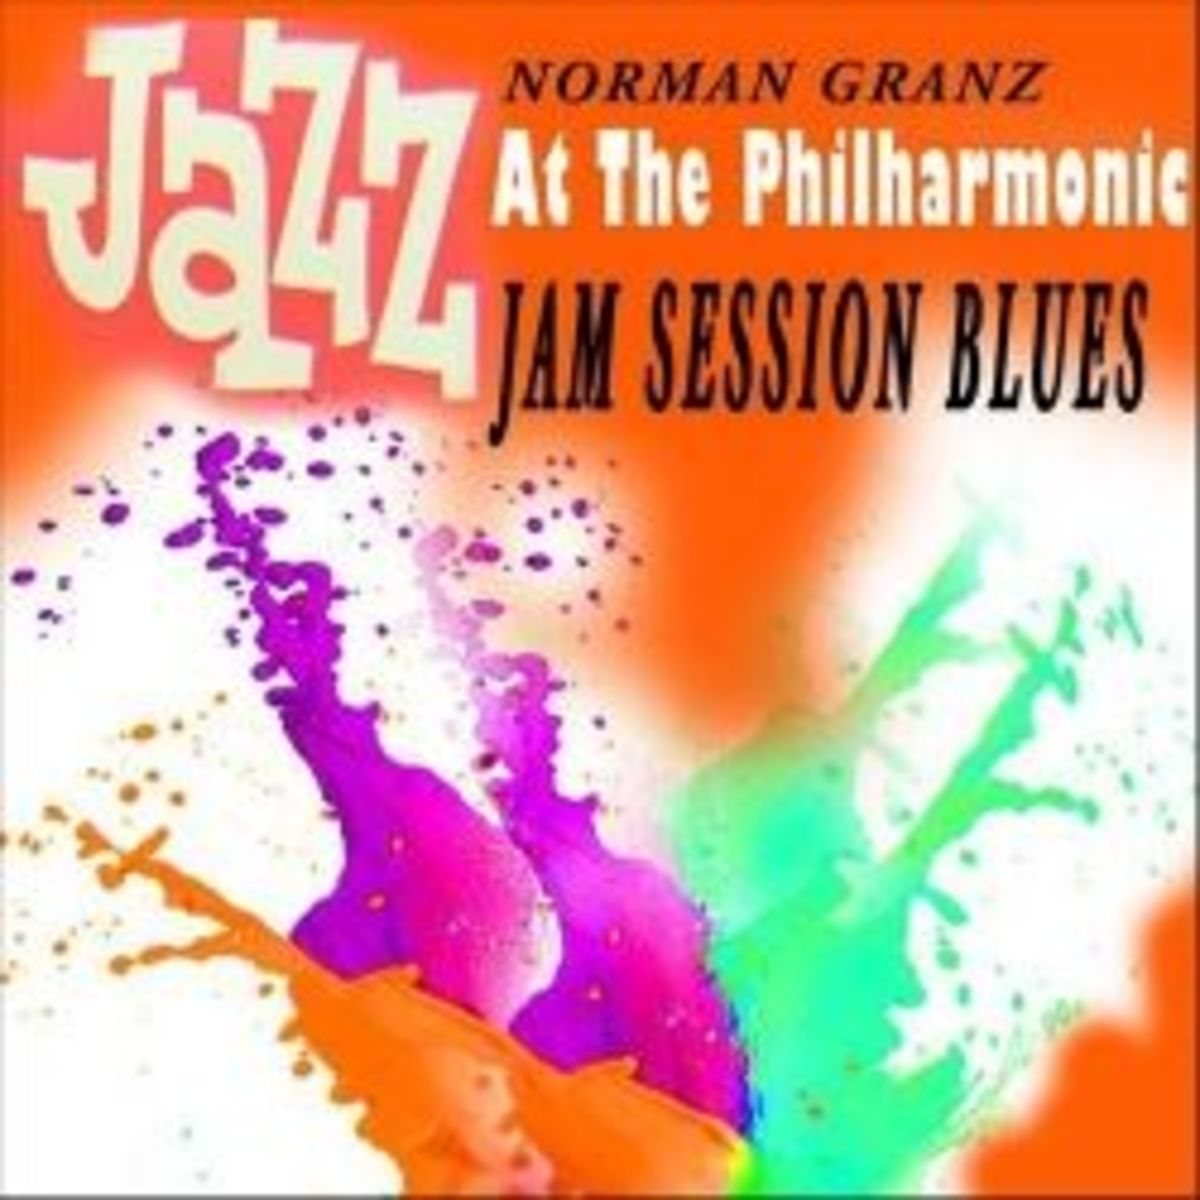 Jazz at the Philharmonic Jam Session Blues Featuring Charlie Parker